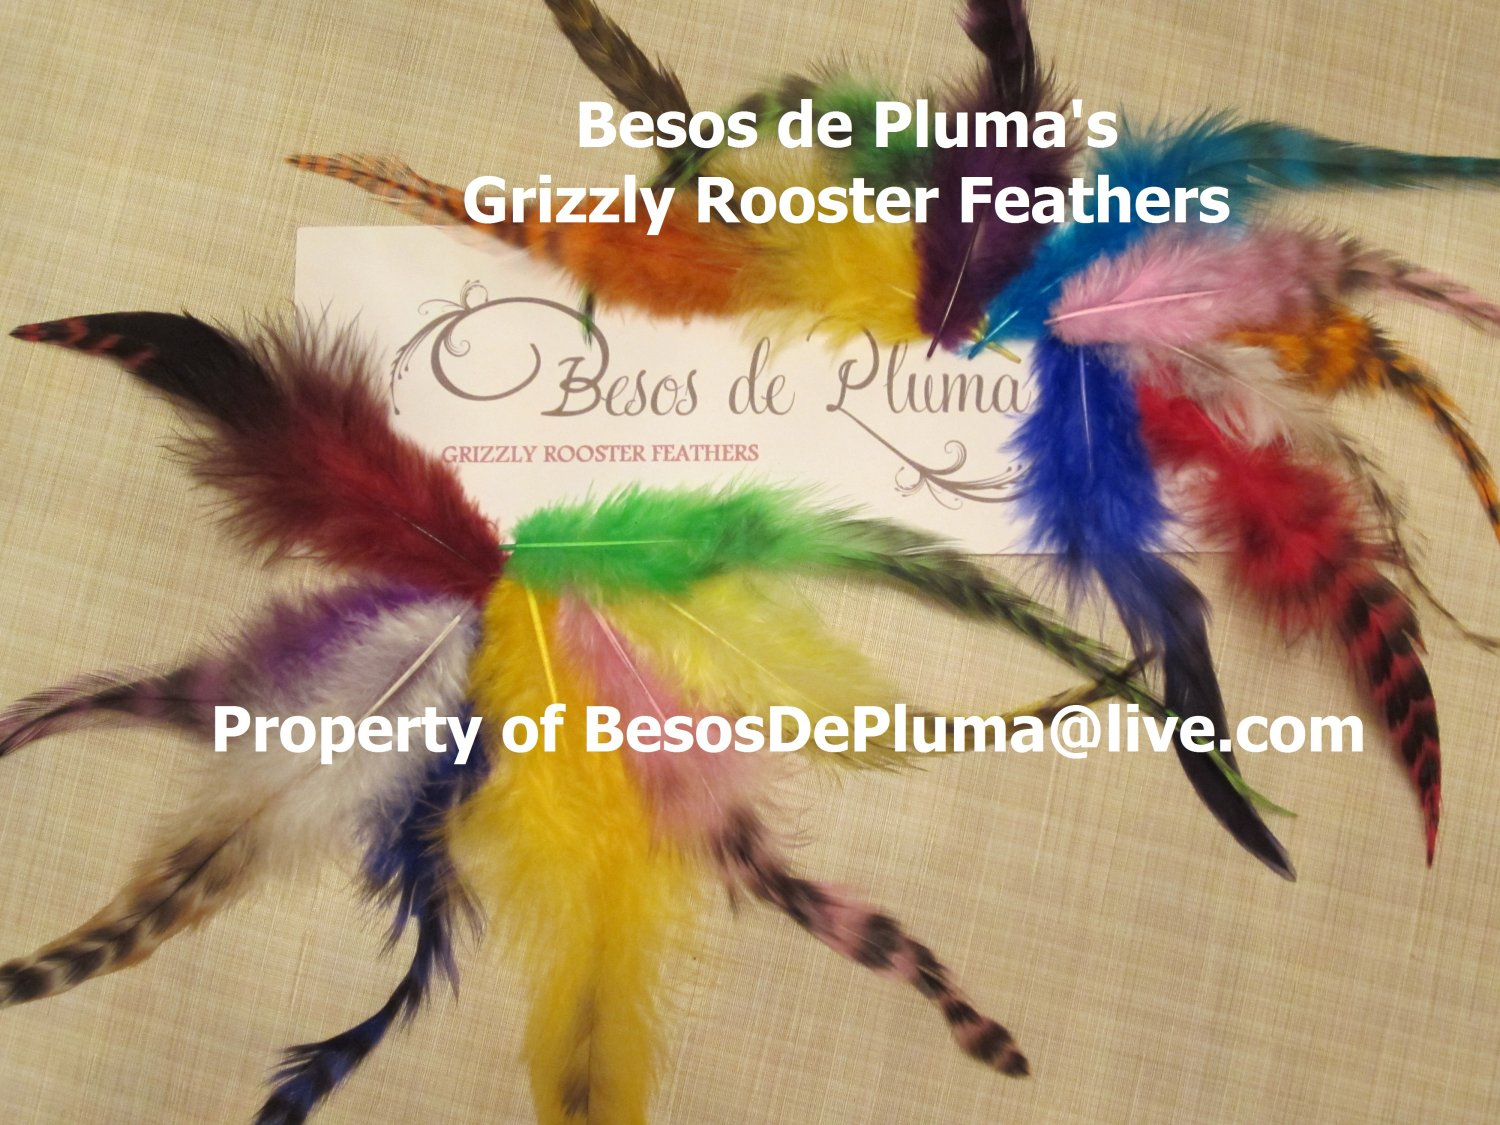 Grizzly Rooster FEATHERS HAIR EXTENSION KIT-Tools+Link Beads+Instructions